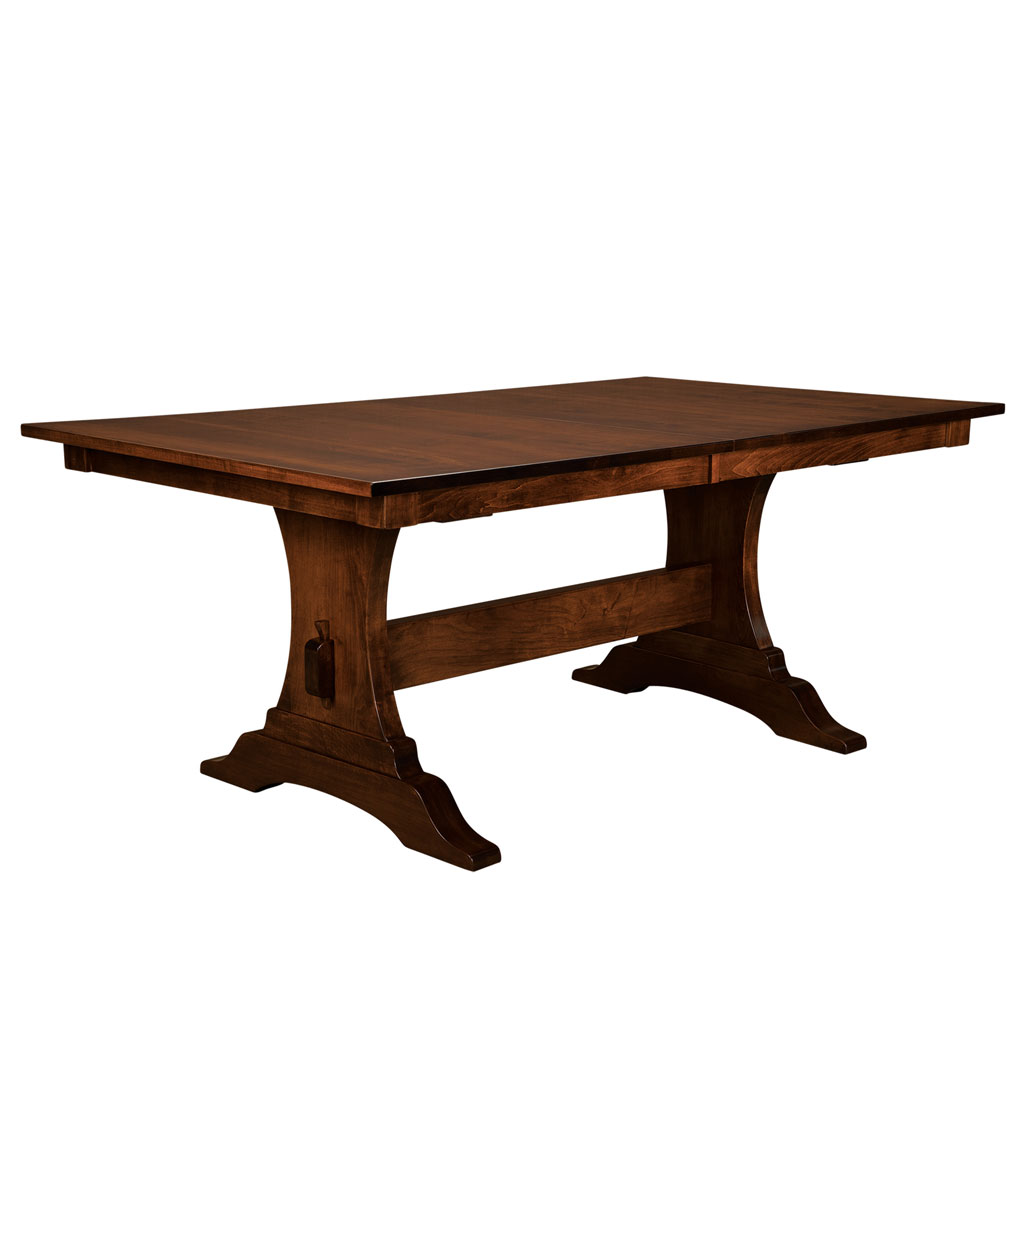 dining design auction nakashima wright table june george of trestle auctions